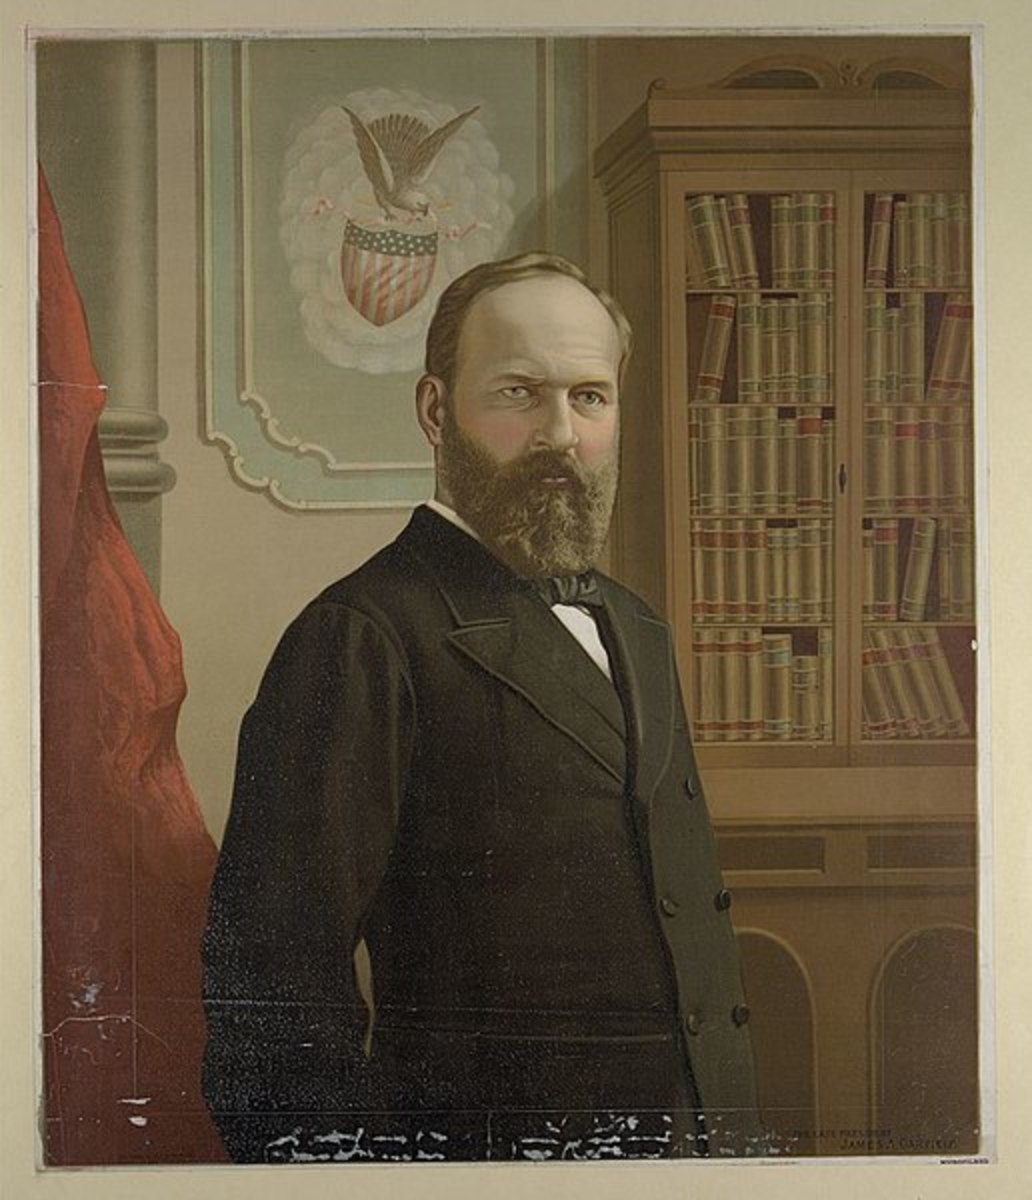 President James Garfield, 20th U.S. President